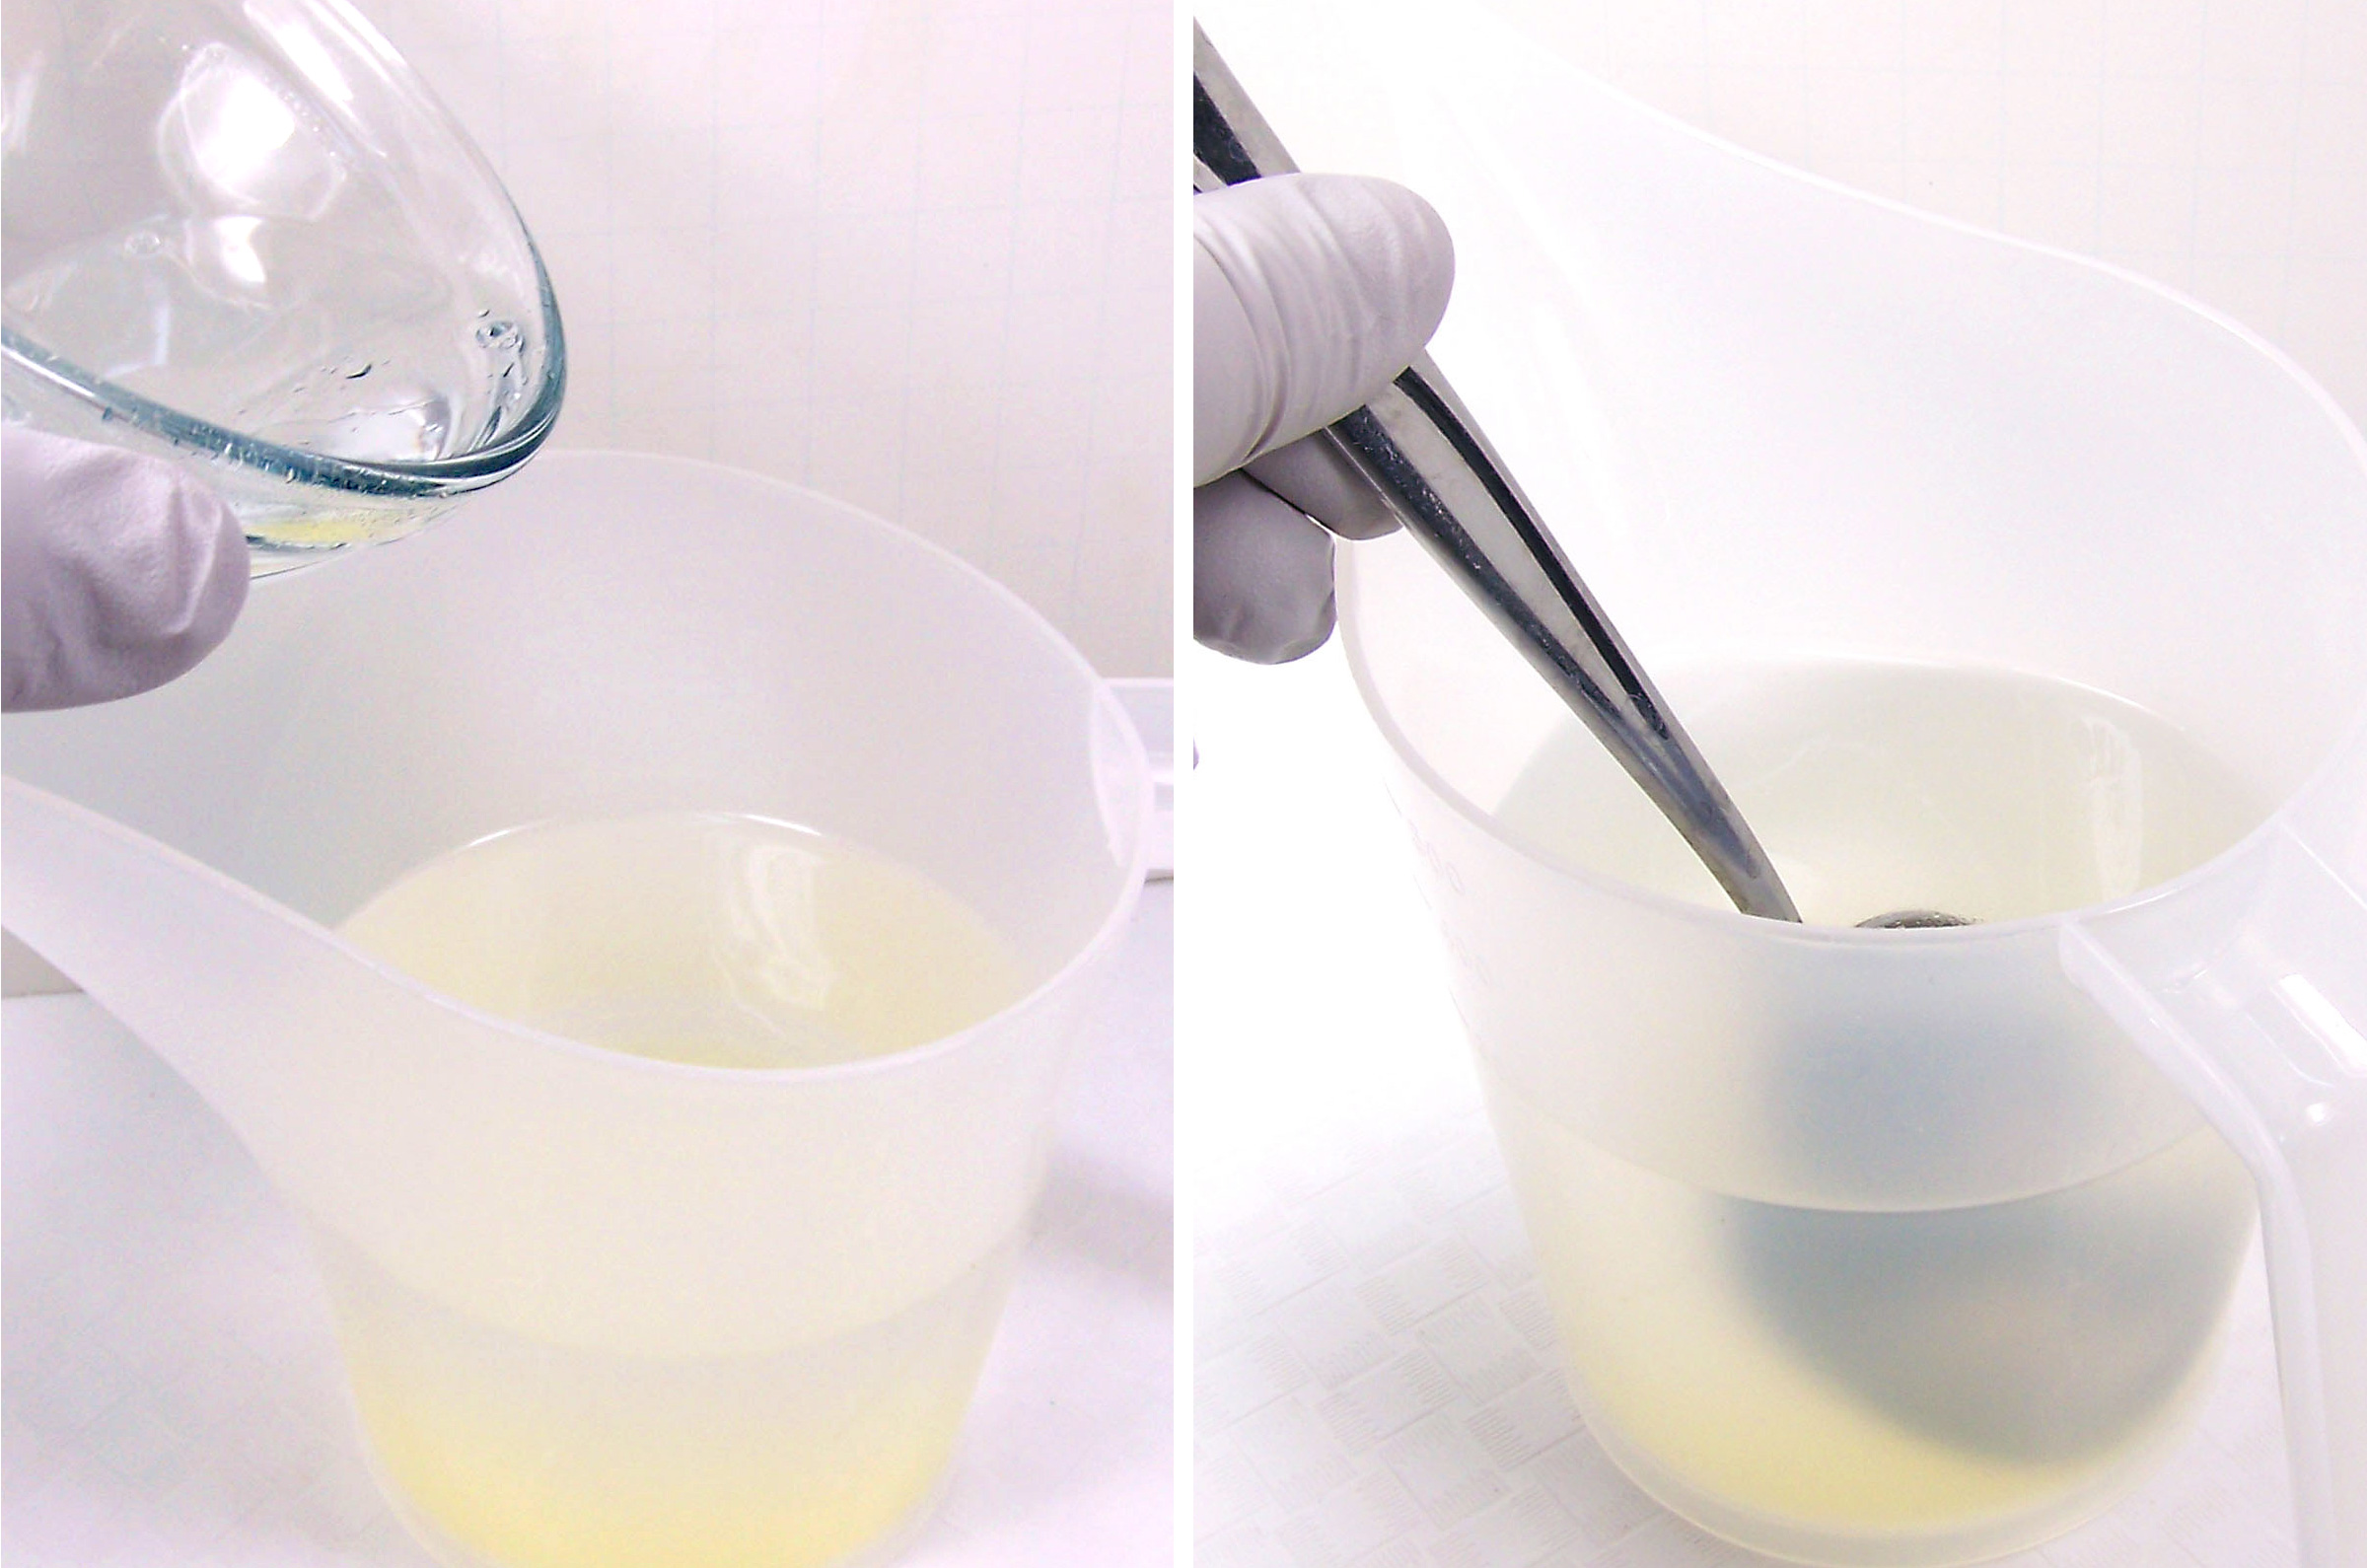 pour perfume base into cyclomethicone and stir